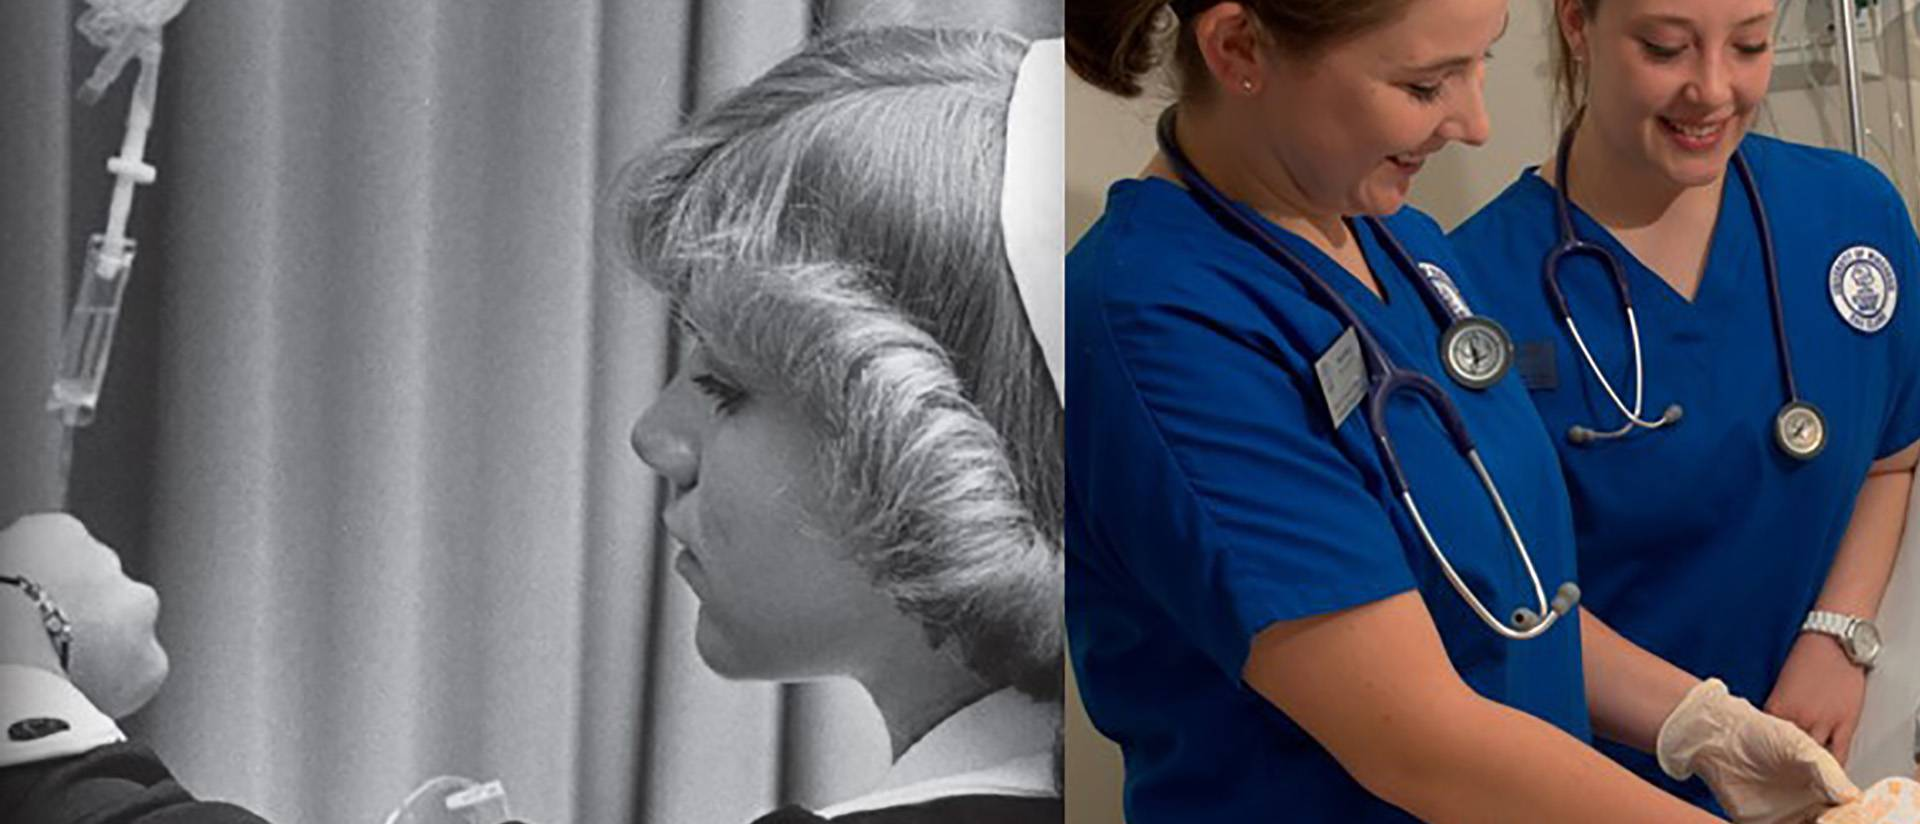 Nursing students then and now